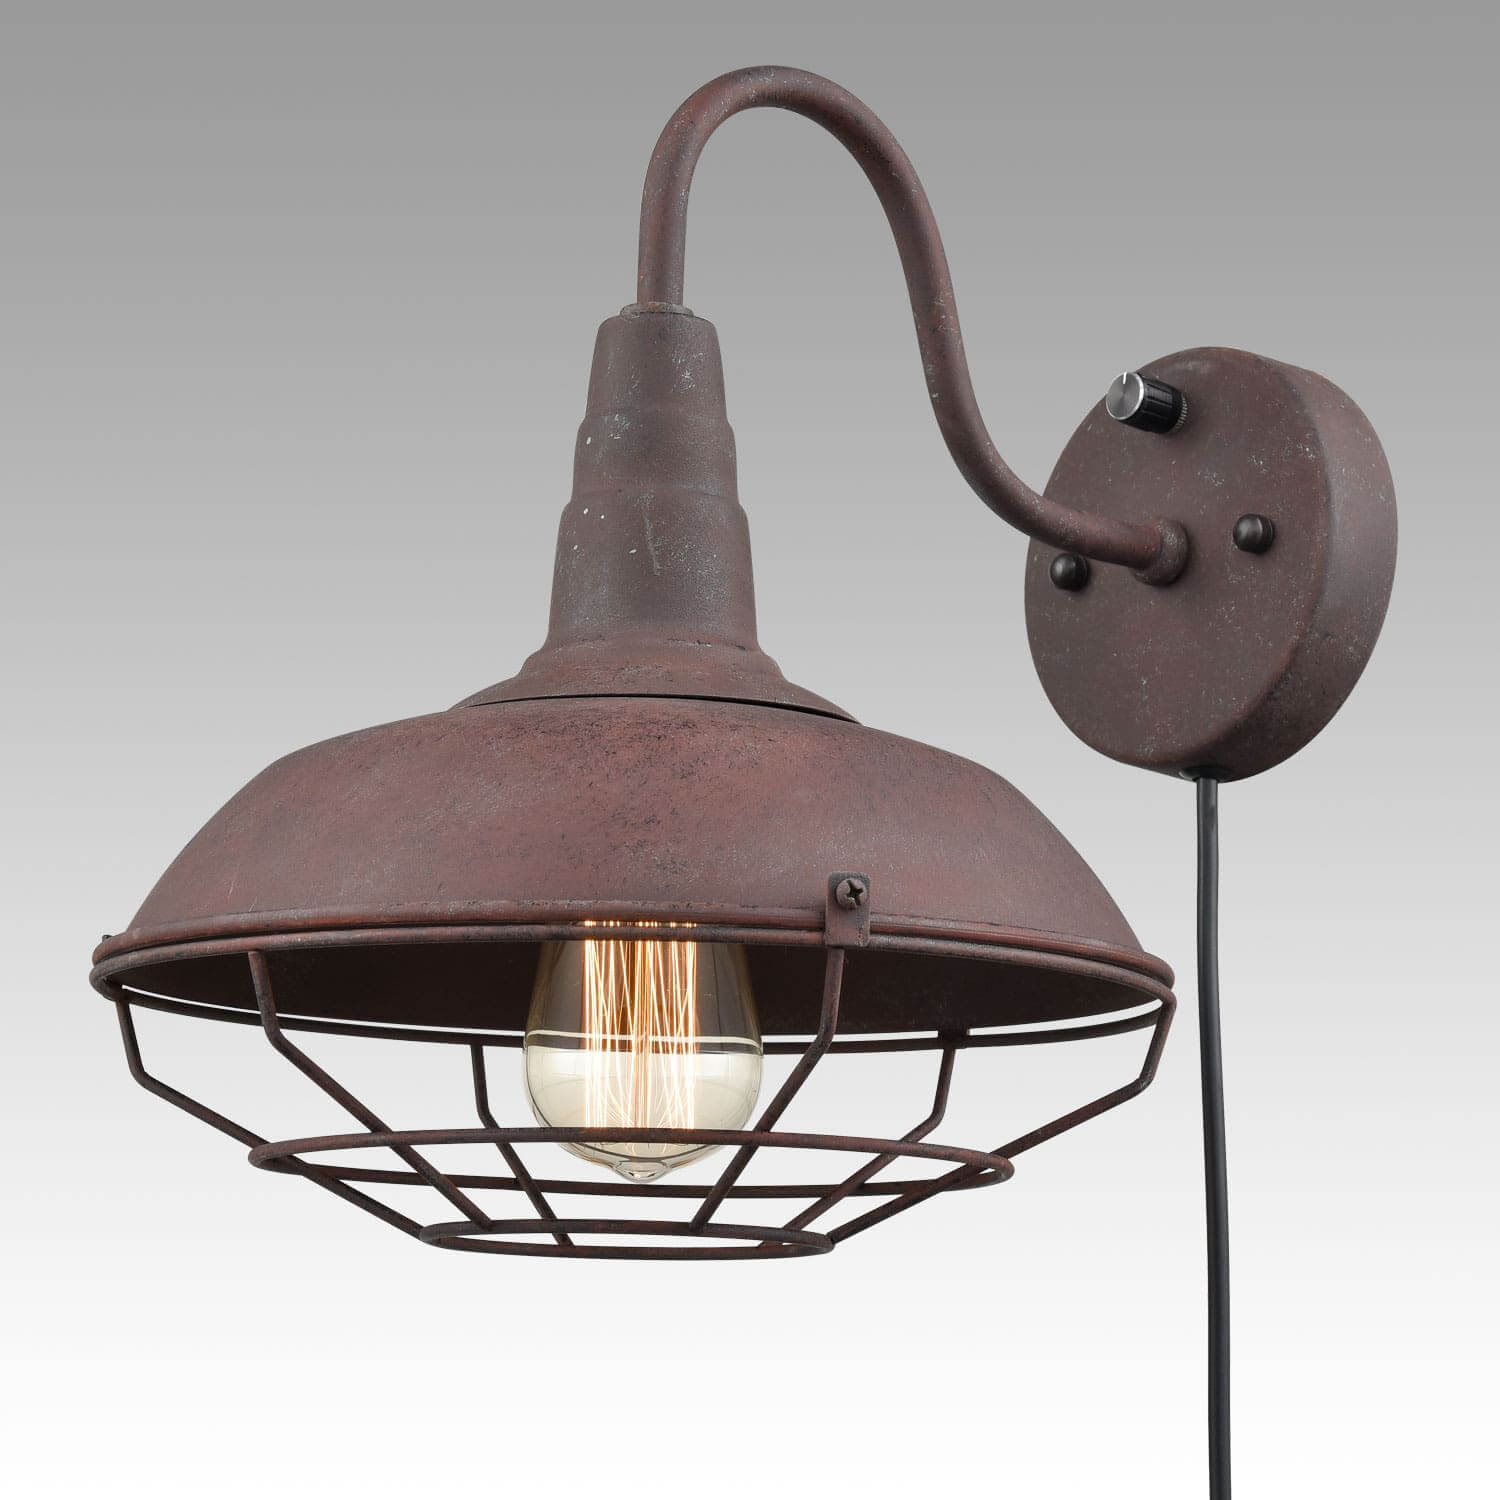 Rustic Metal Plug in Wall Lights with Barn Cage Shade